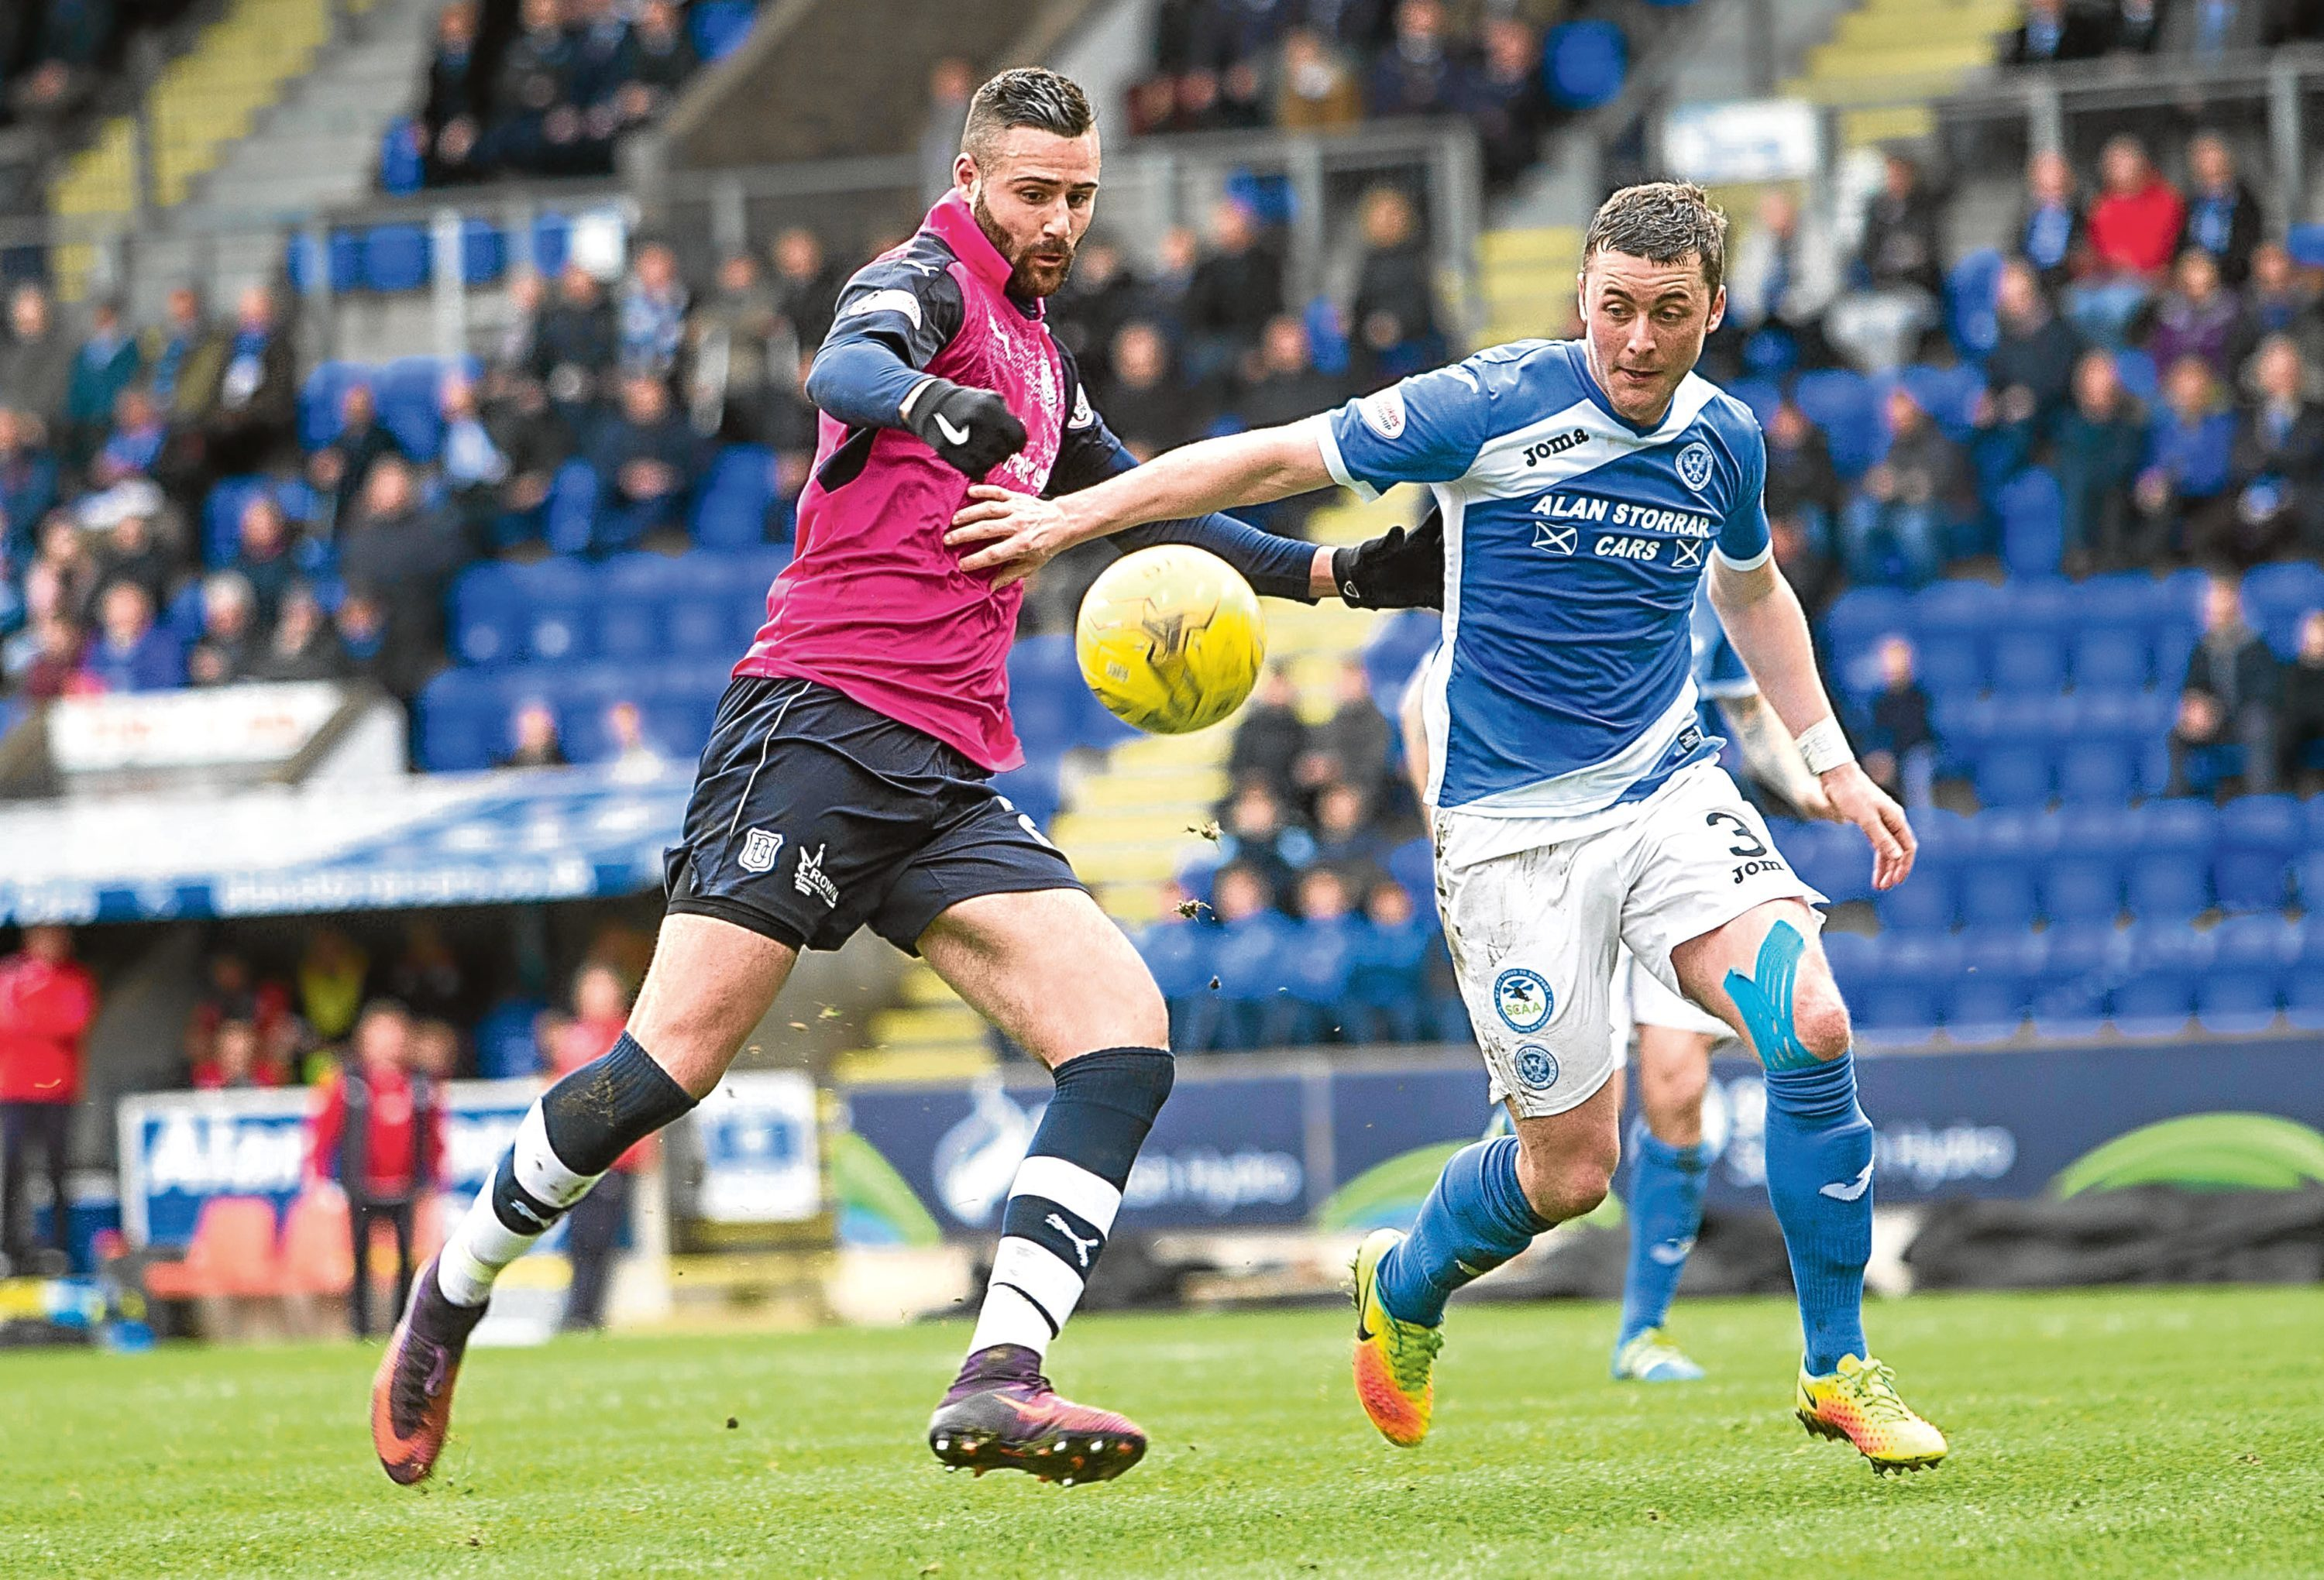 Marcus Haber's route to goal is blocked by Tom Scobbie during St Johnstone's 2-0 win at McDiarmid Park on Saturday